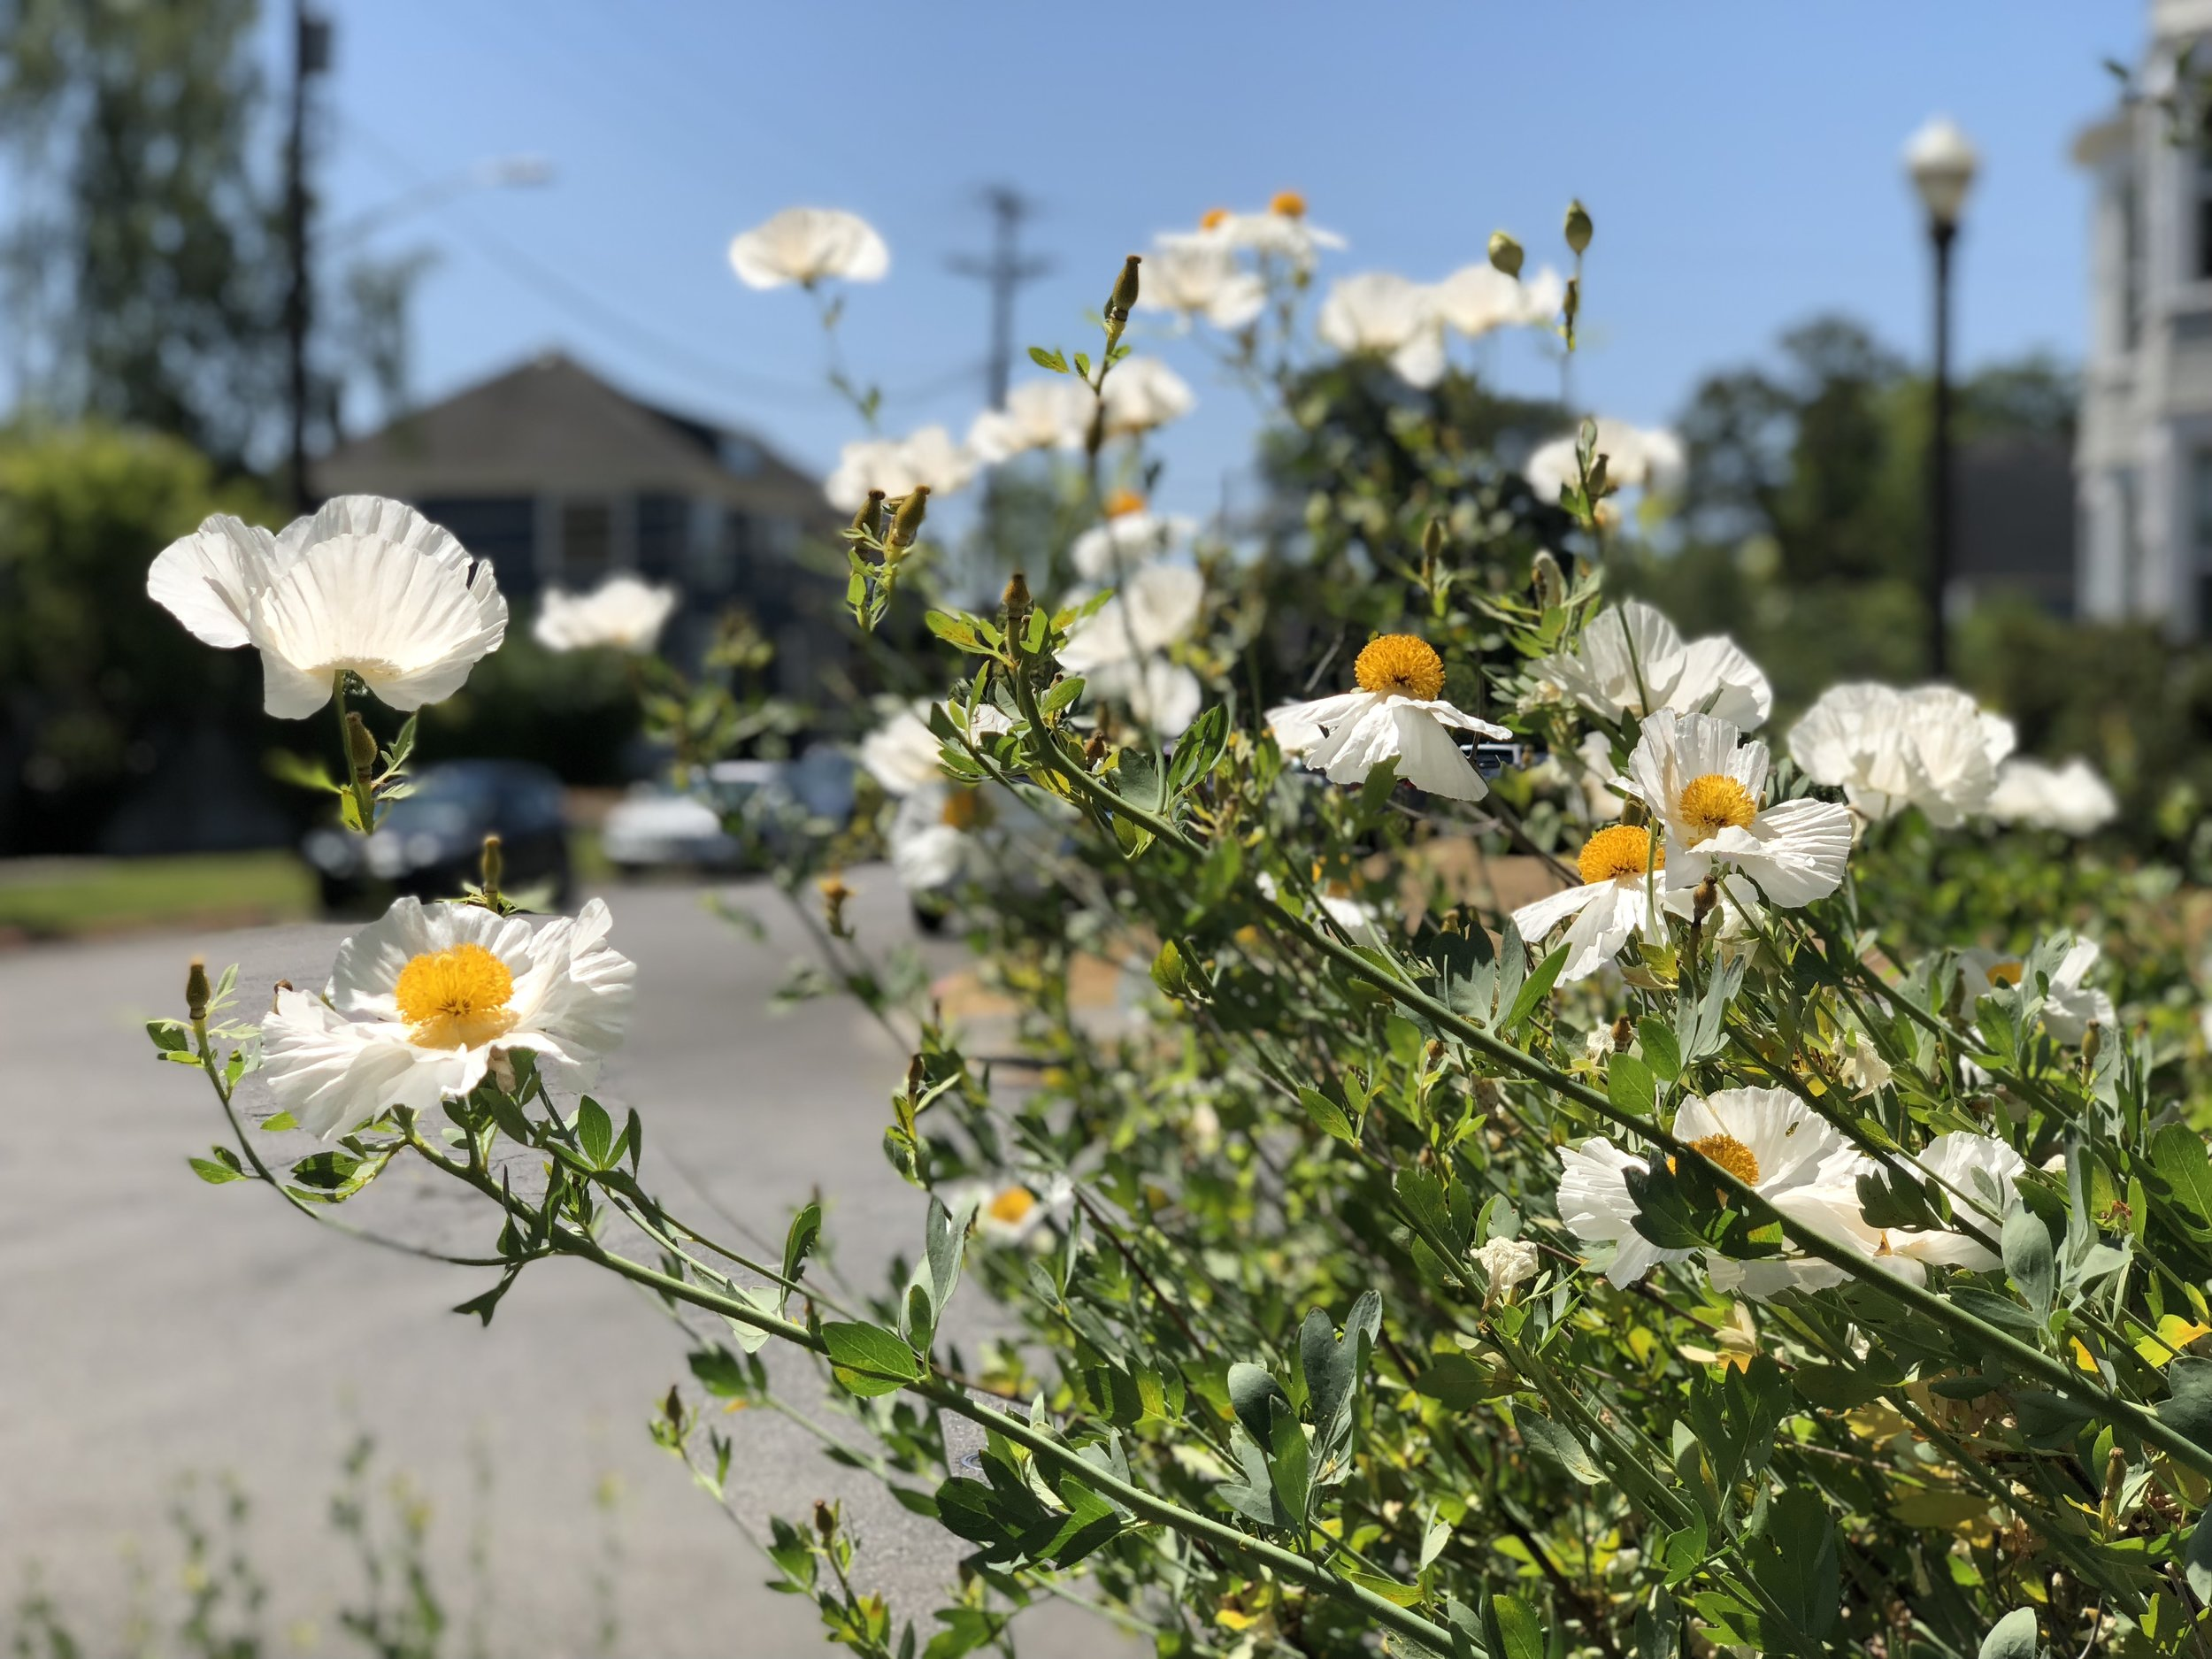 Matilija poppy growing happily on a Tacoma sidewalk corner in mid July.